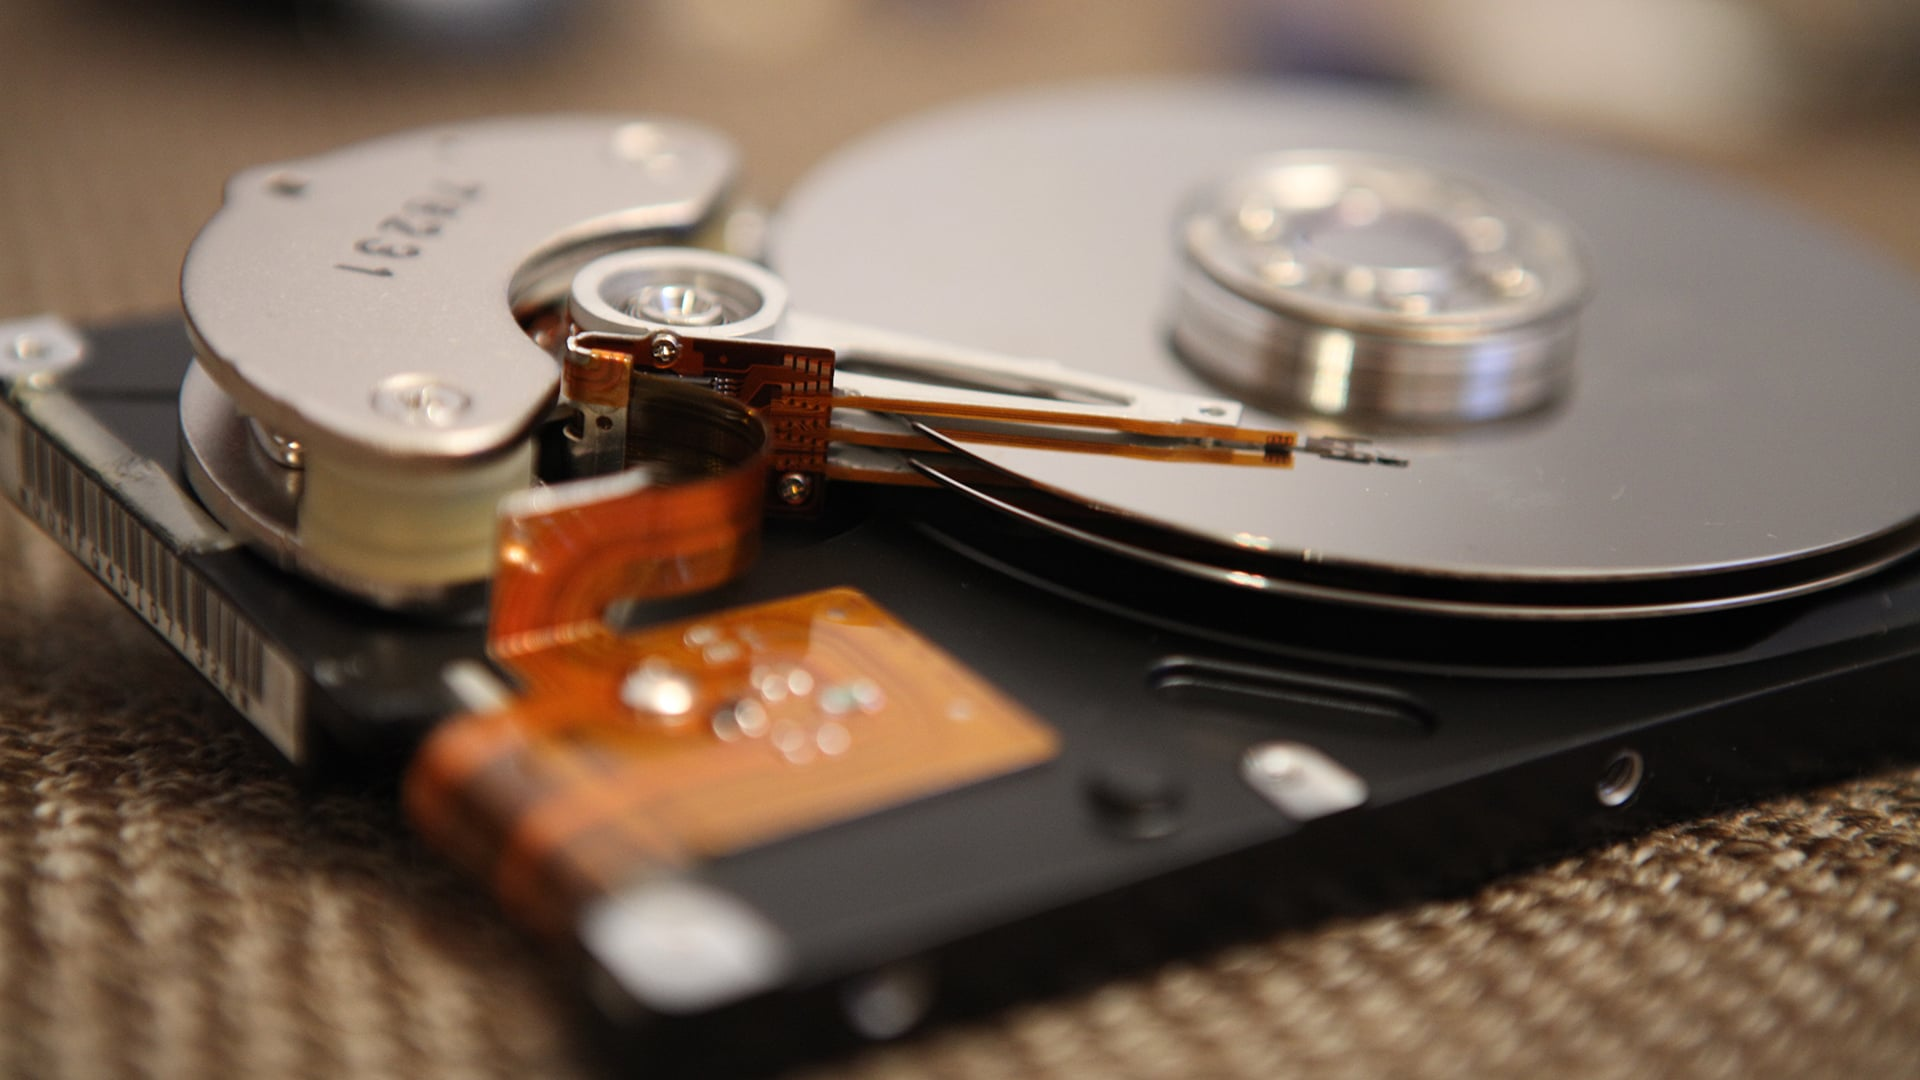 Recover deleted data in Windows with EaseUs Data Recovery Wizard